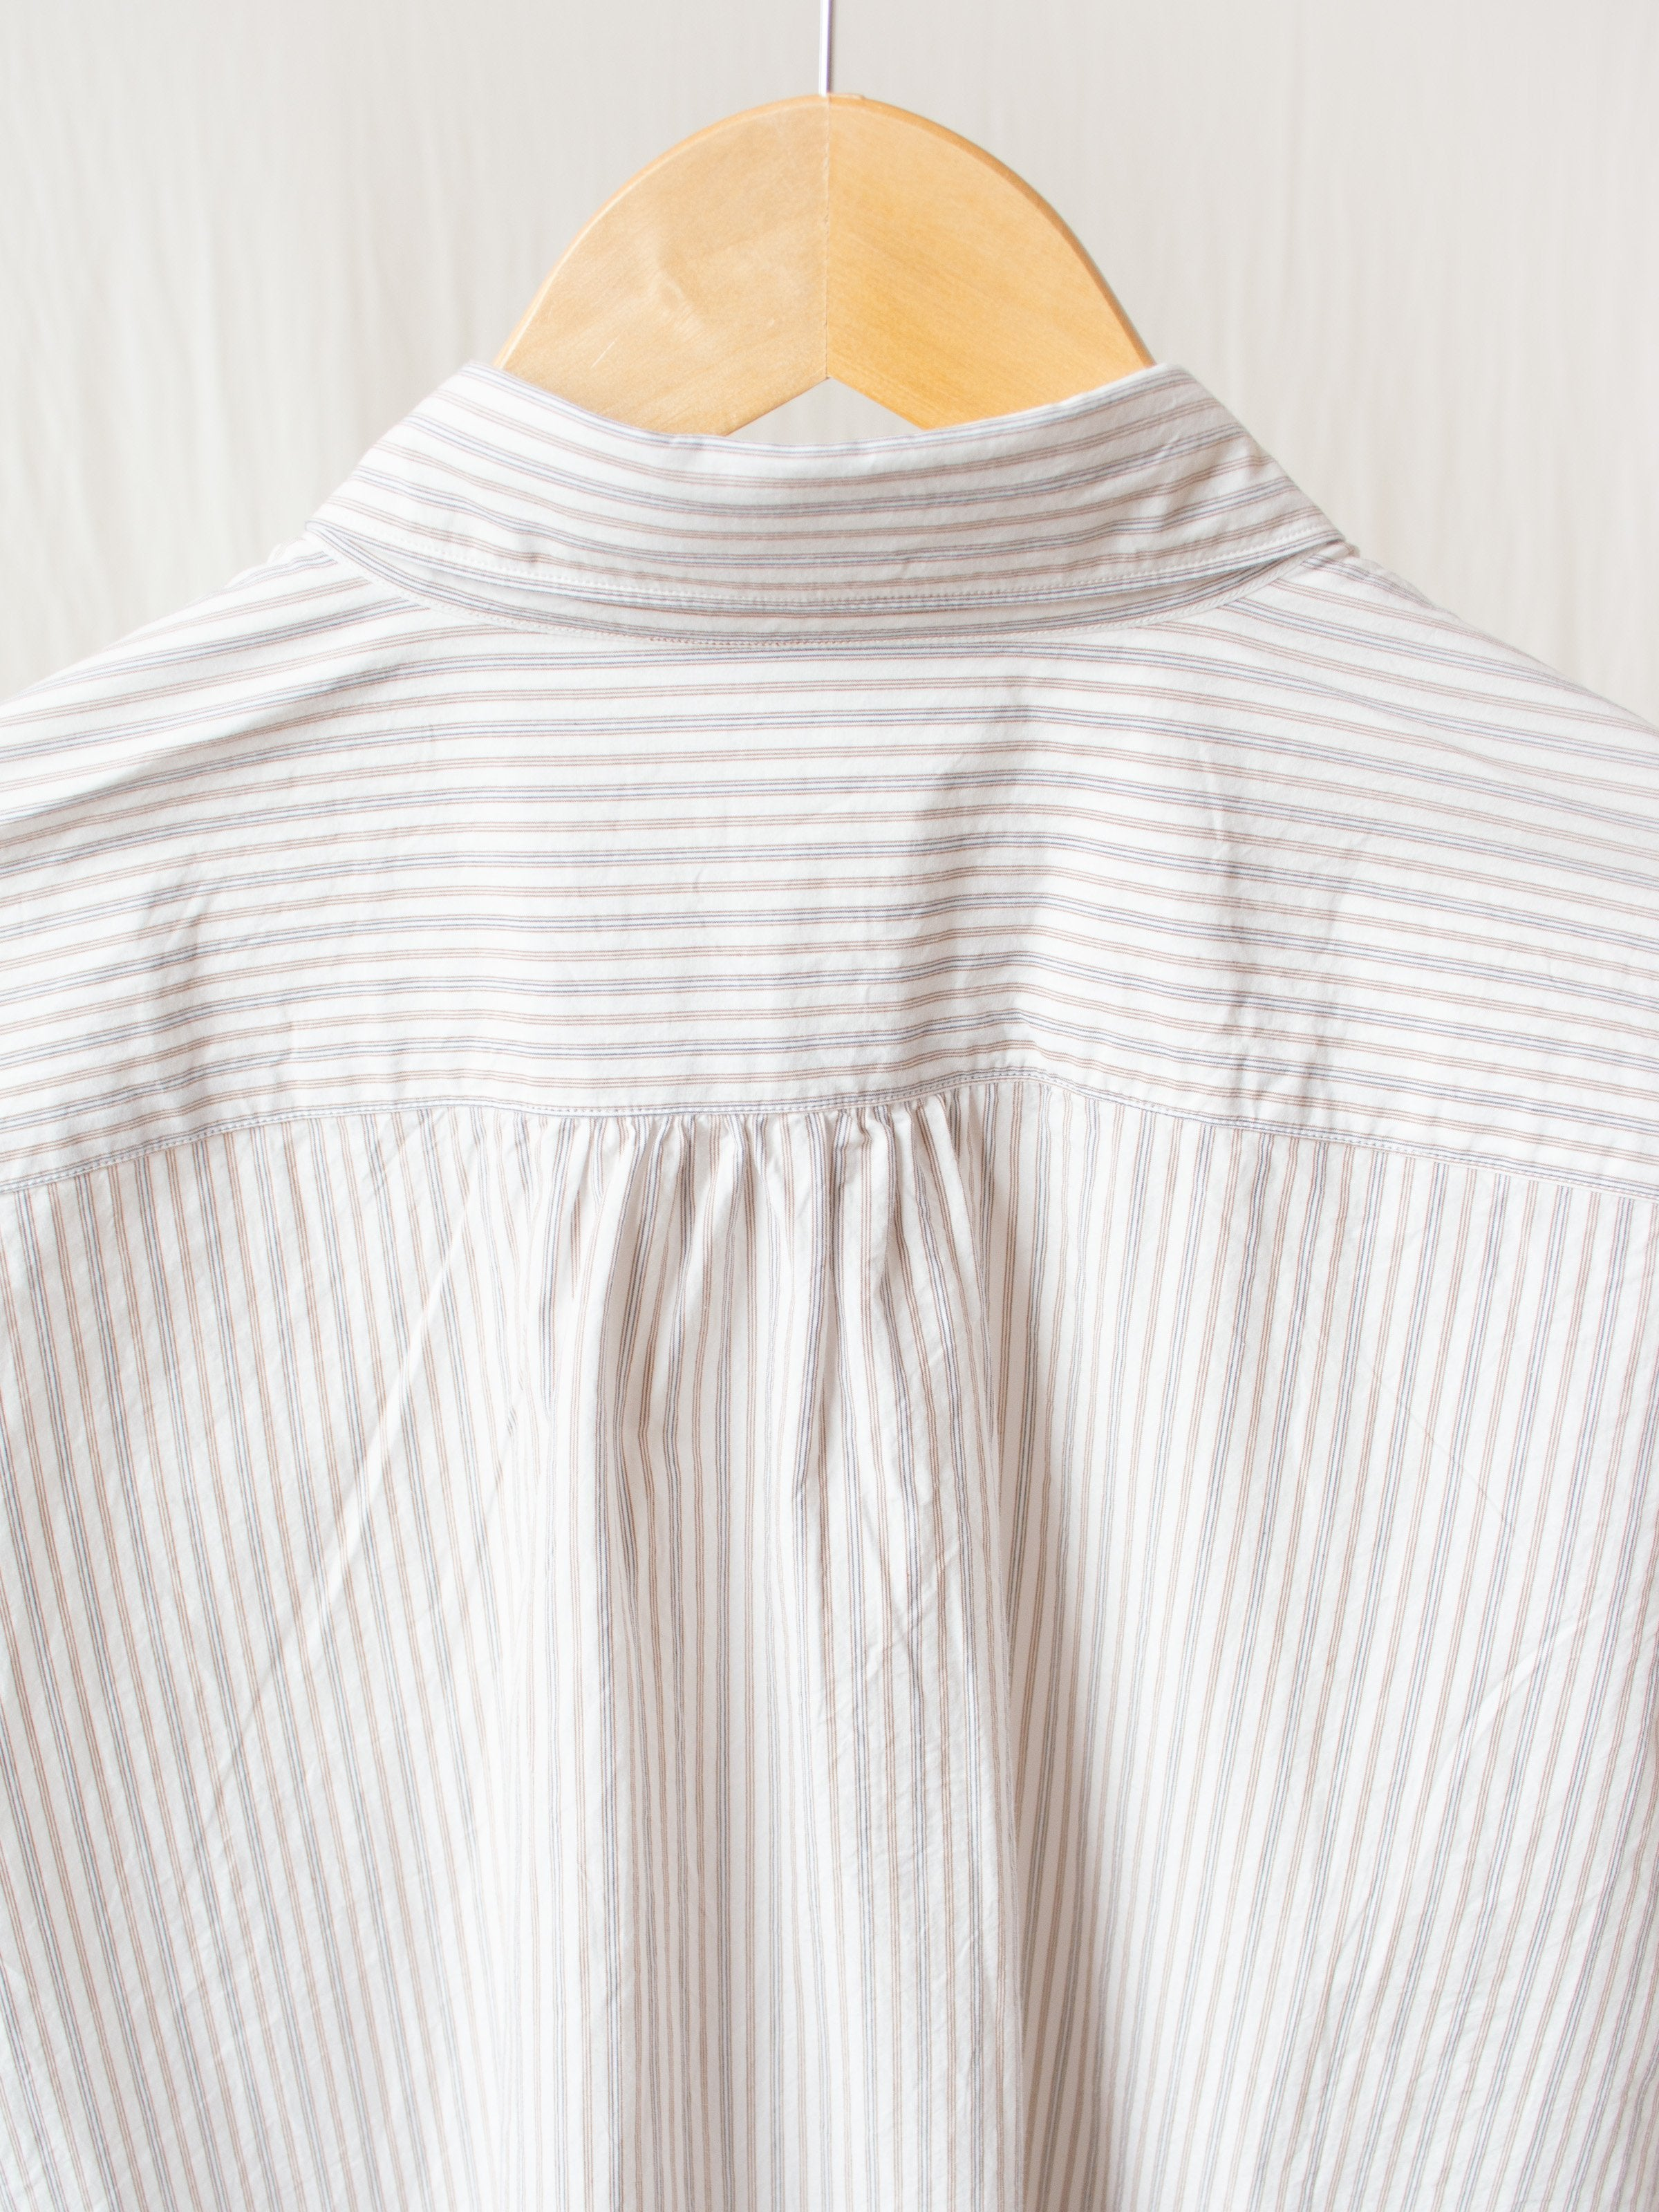 Namu Shop - Fujito B/S Shirt - Stripe